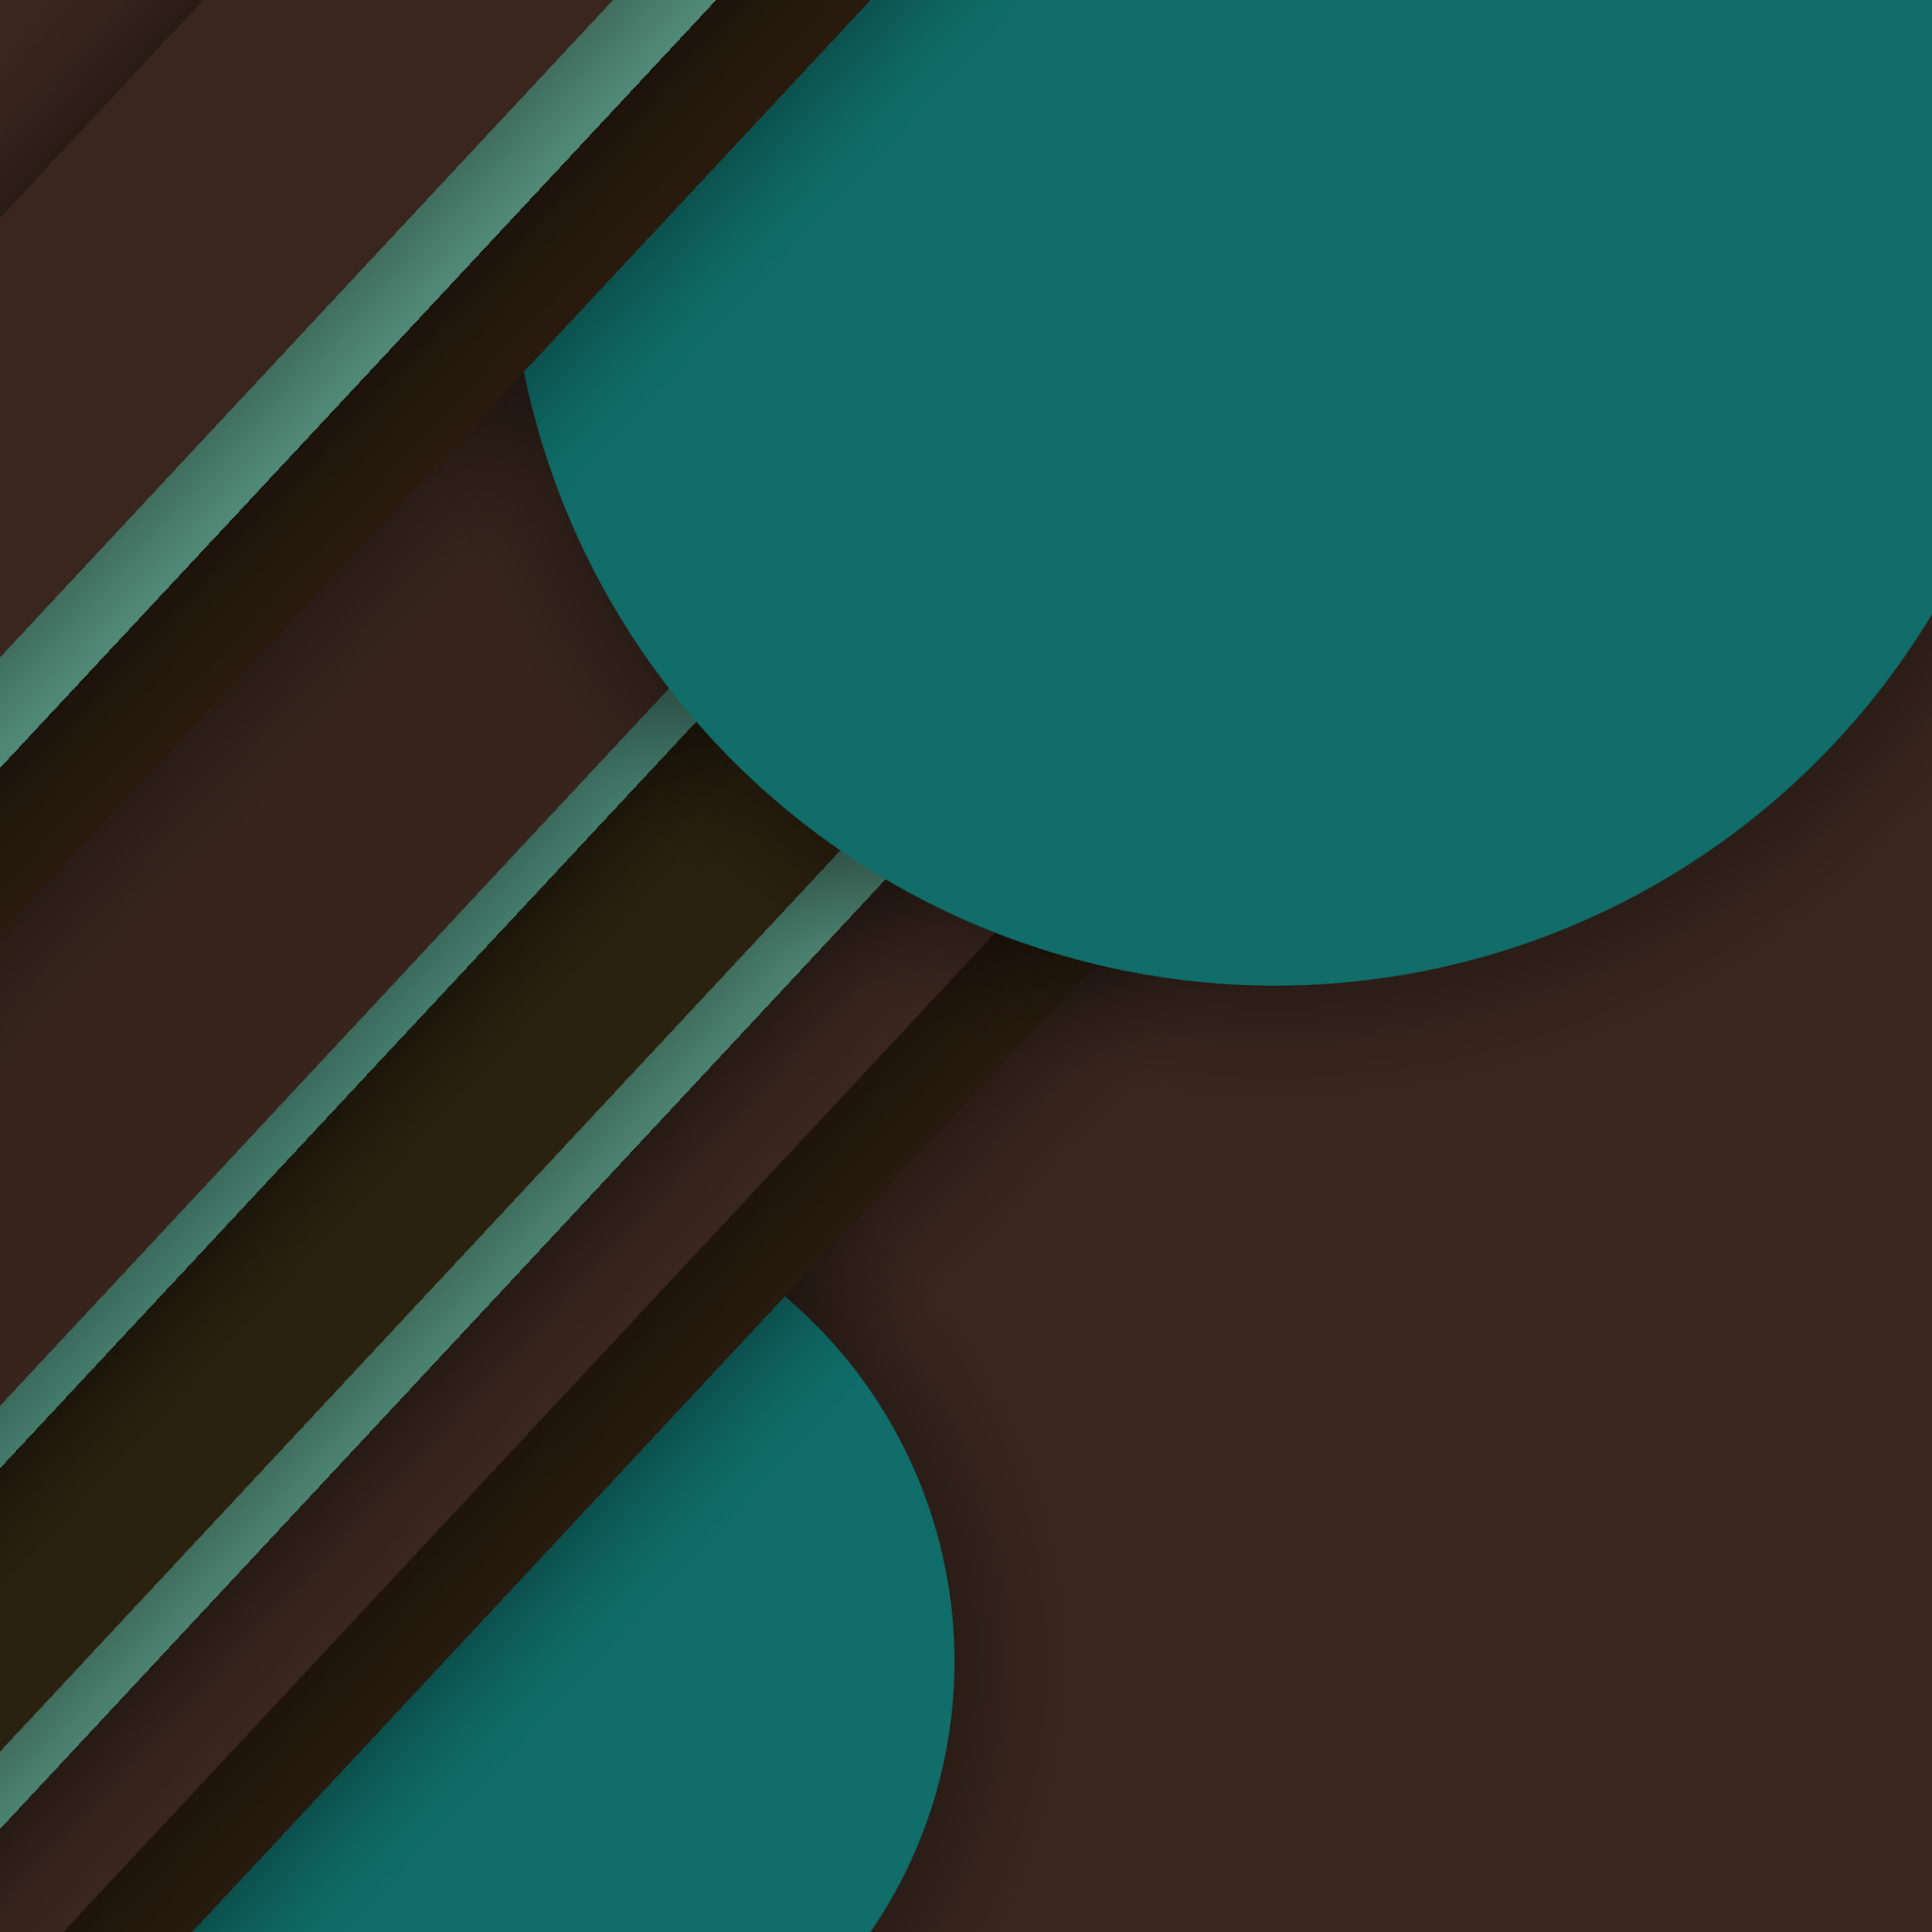 Android Lollipop Tap to see more Android wallpapers